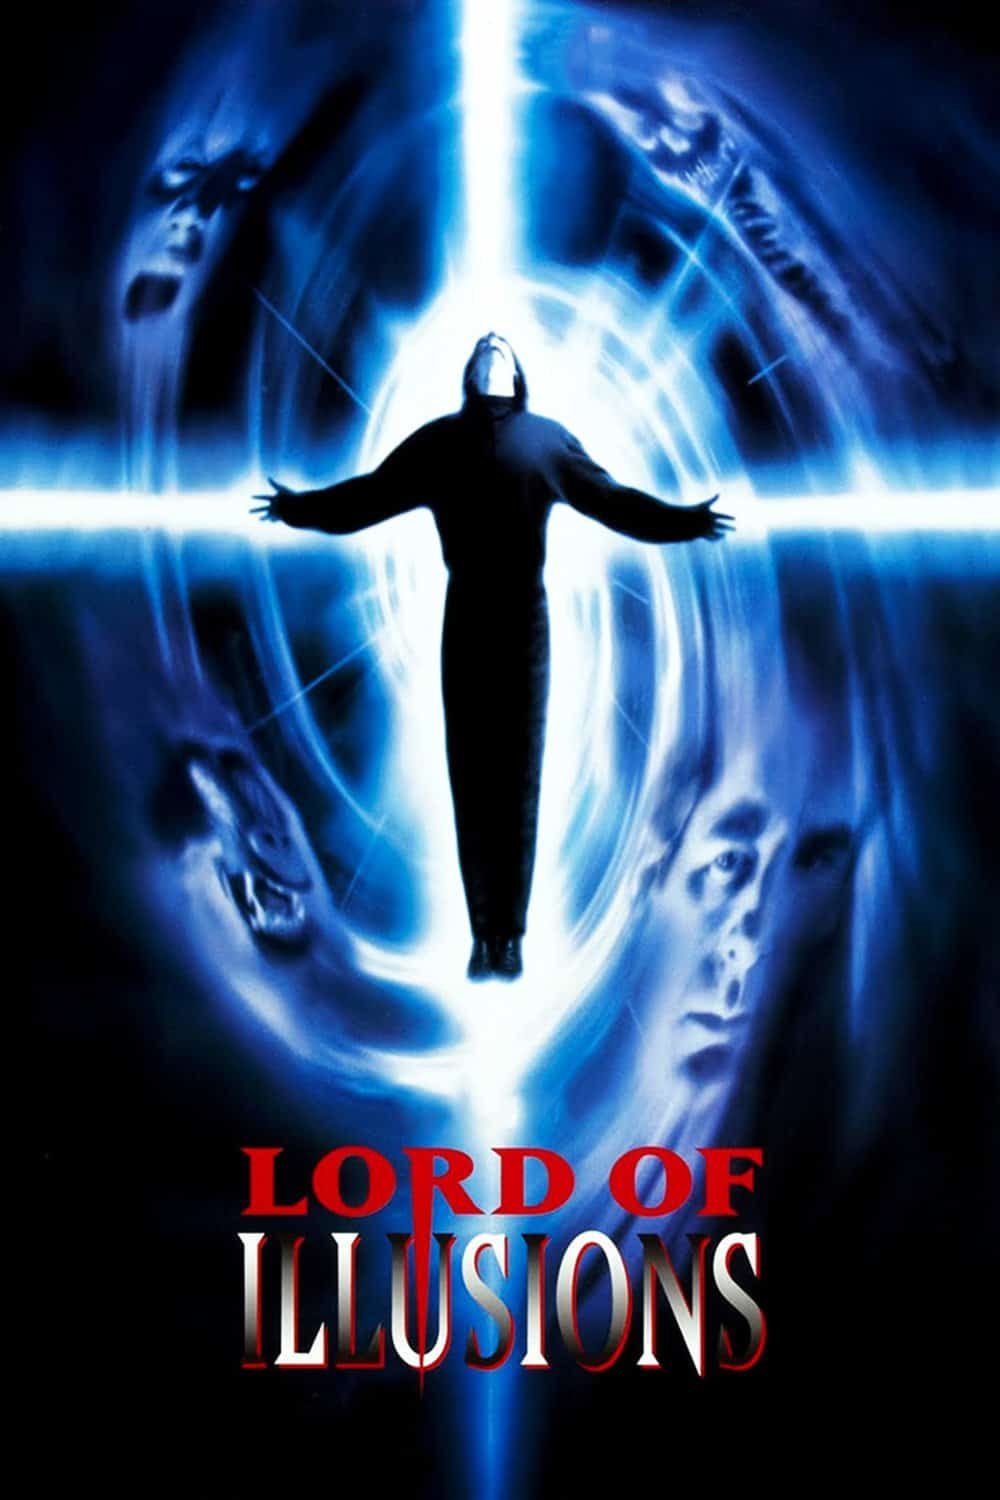 Lord of Illusions, 1995